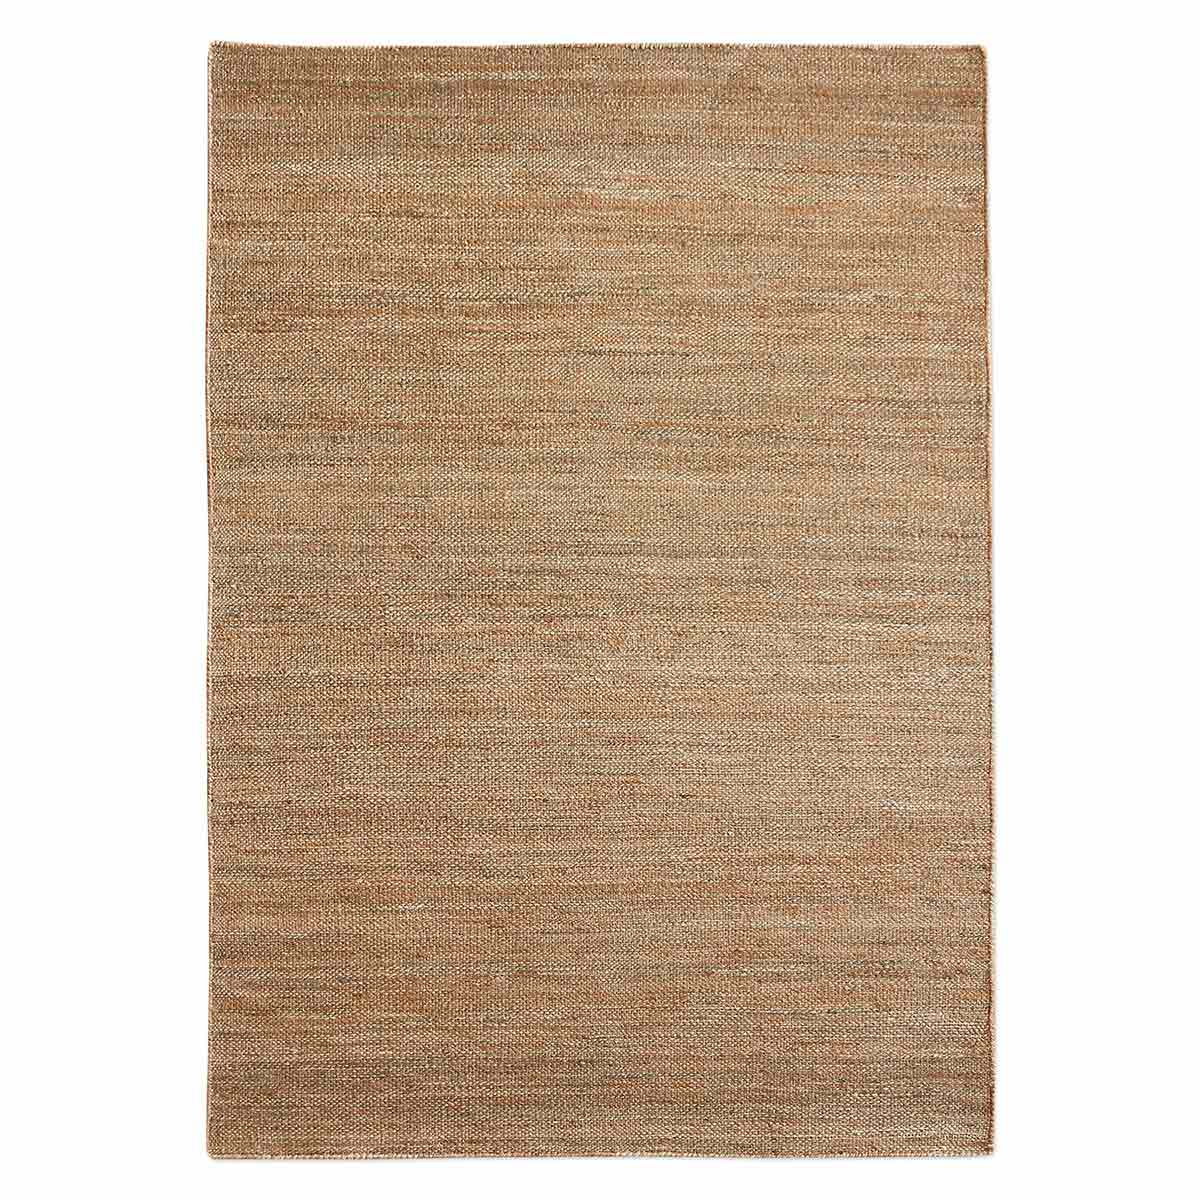 Uttermost Seeley 5 x 8 Rug - Brick